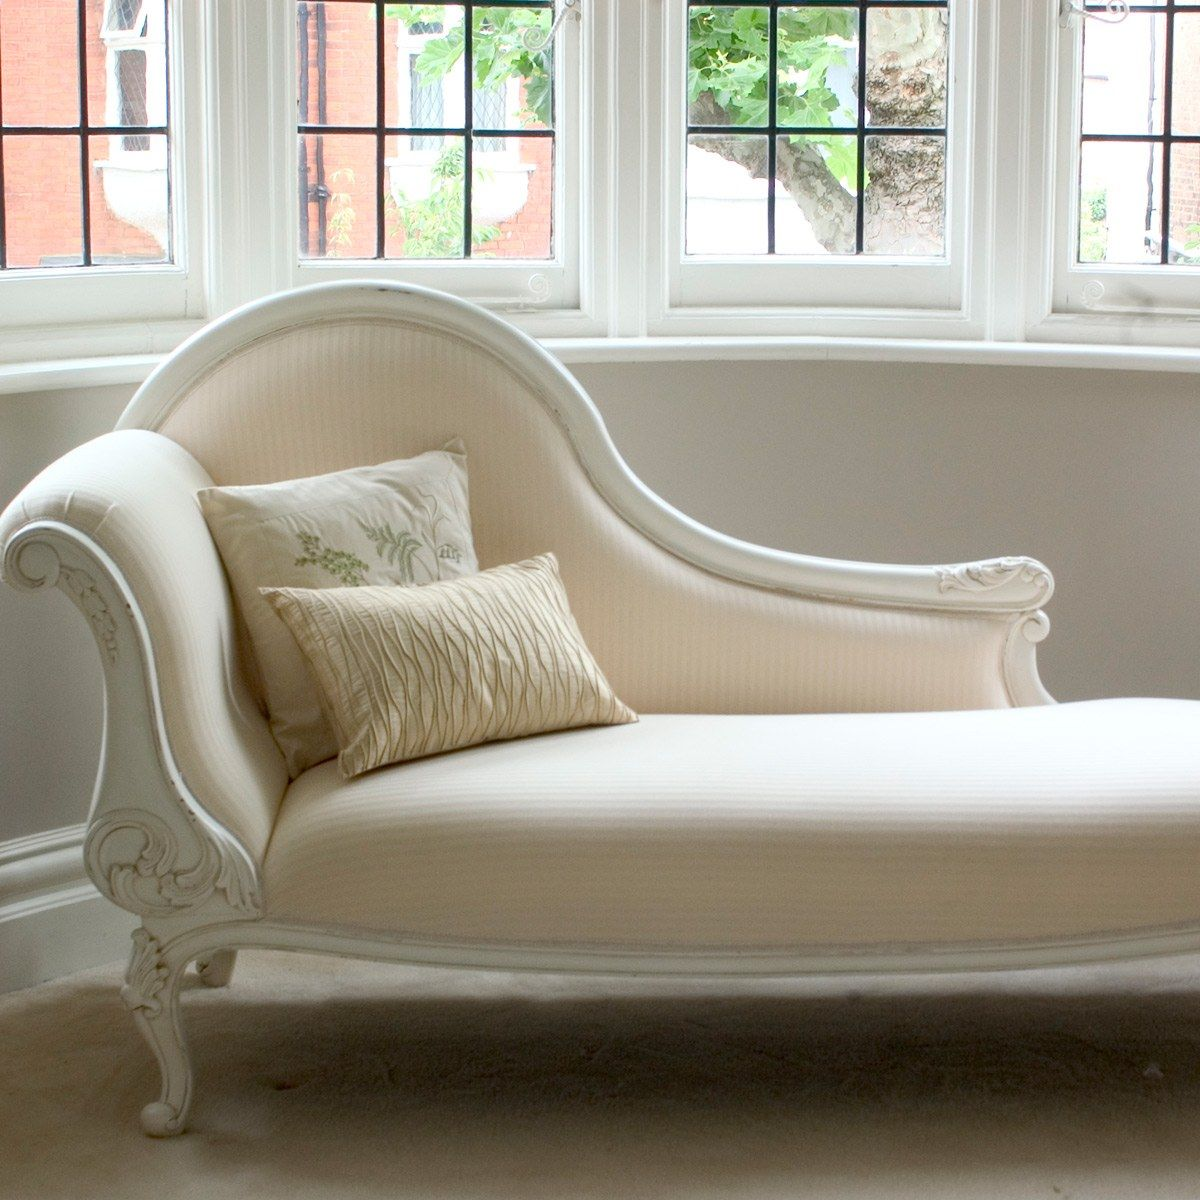 - Classical White Chaise Longue โซฟา